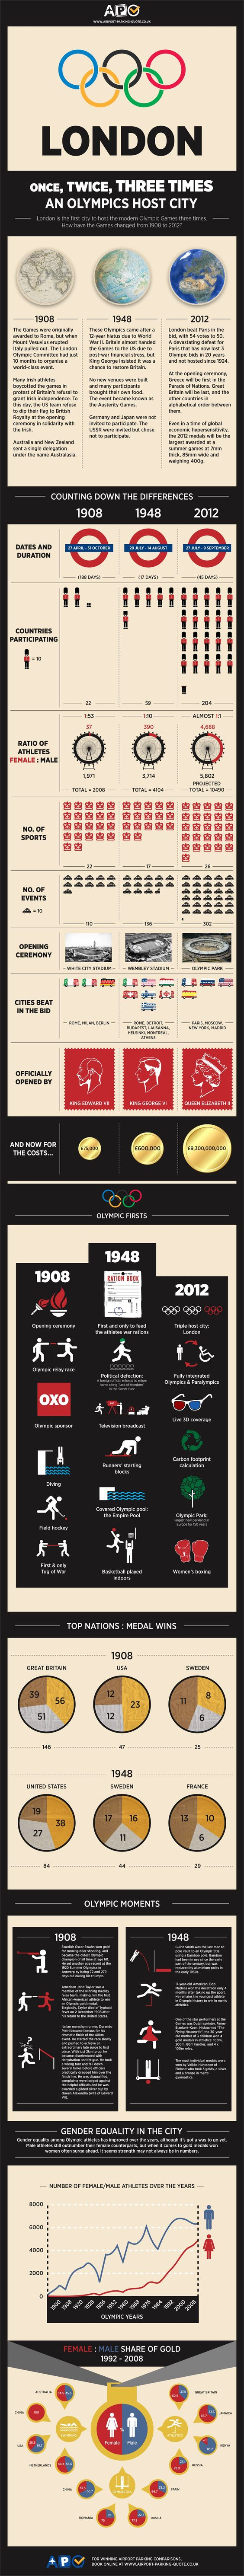 London 2012 Olympics: Once, Twice, Three Times An Olympics Host City